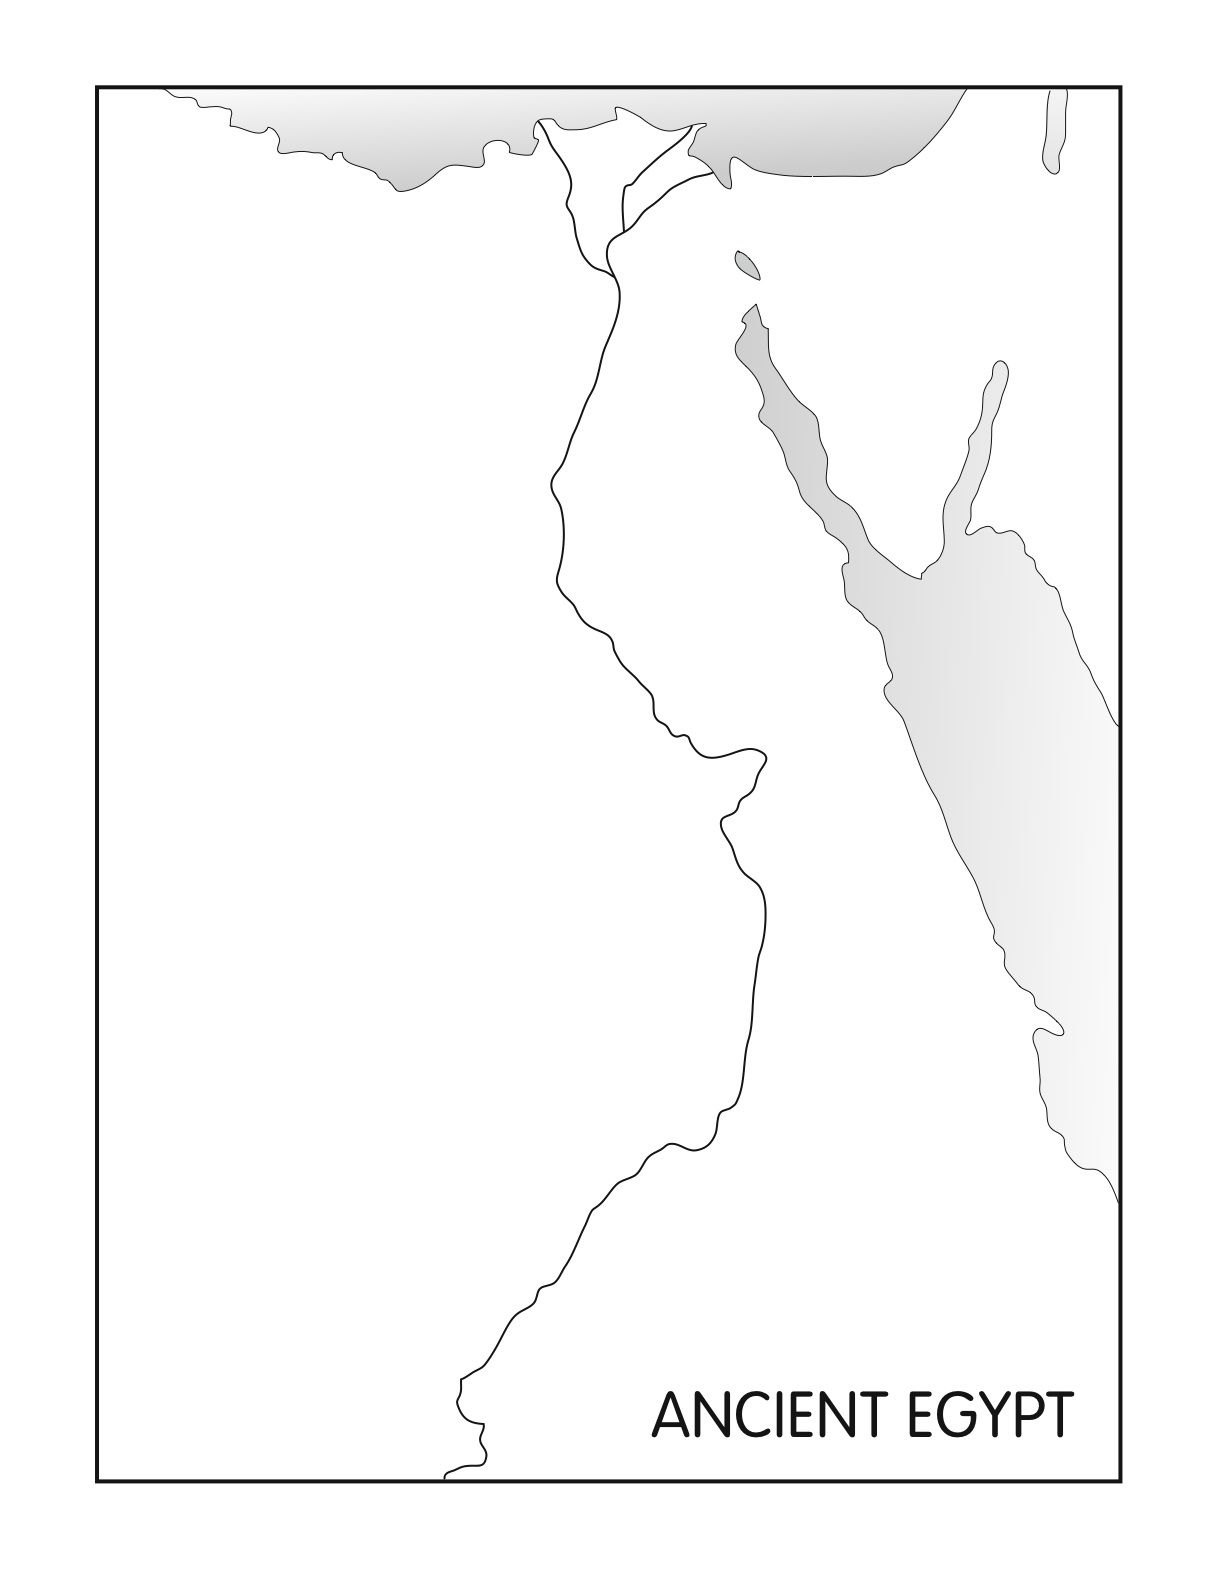 Outline Maps Ancient Egypt and Greece – Ancient Greece Map Worksheet